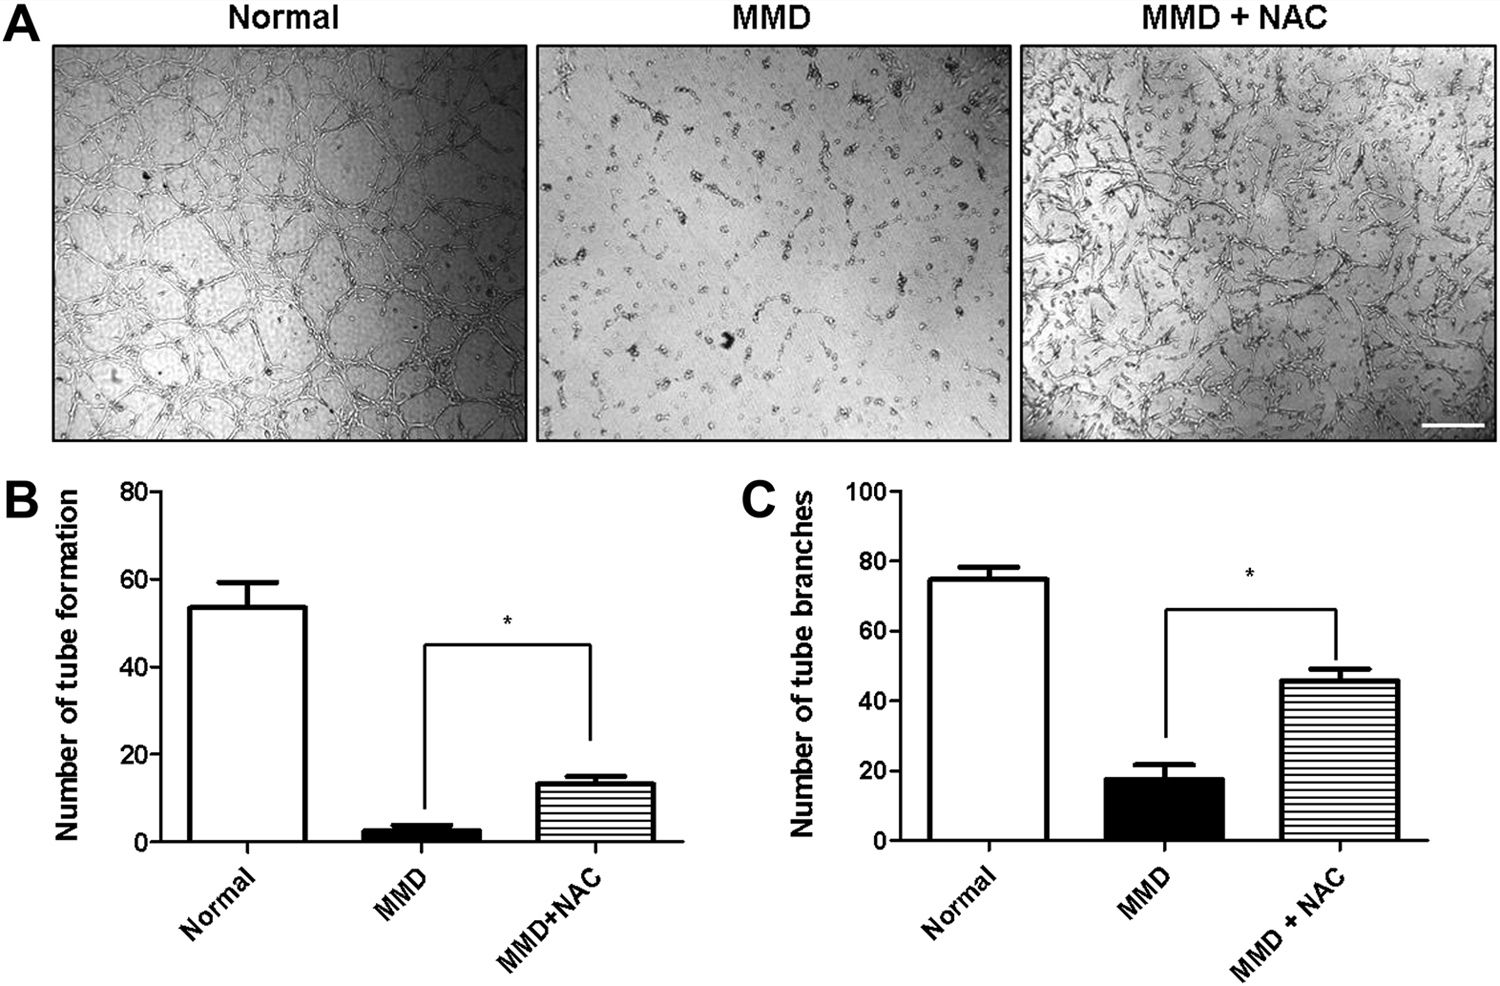 Mitochondrial abnormalities related to the dysfunction of